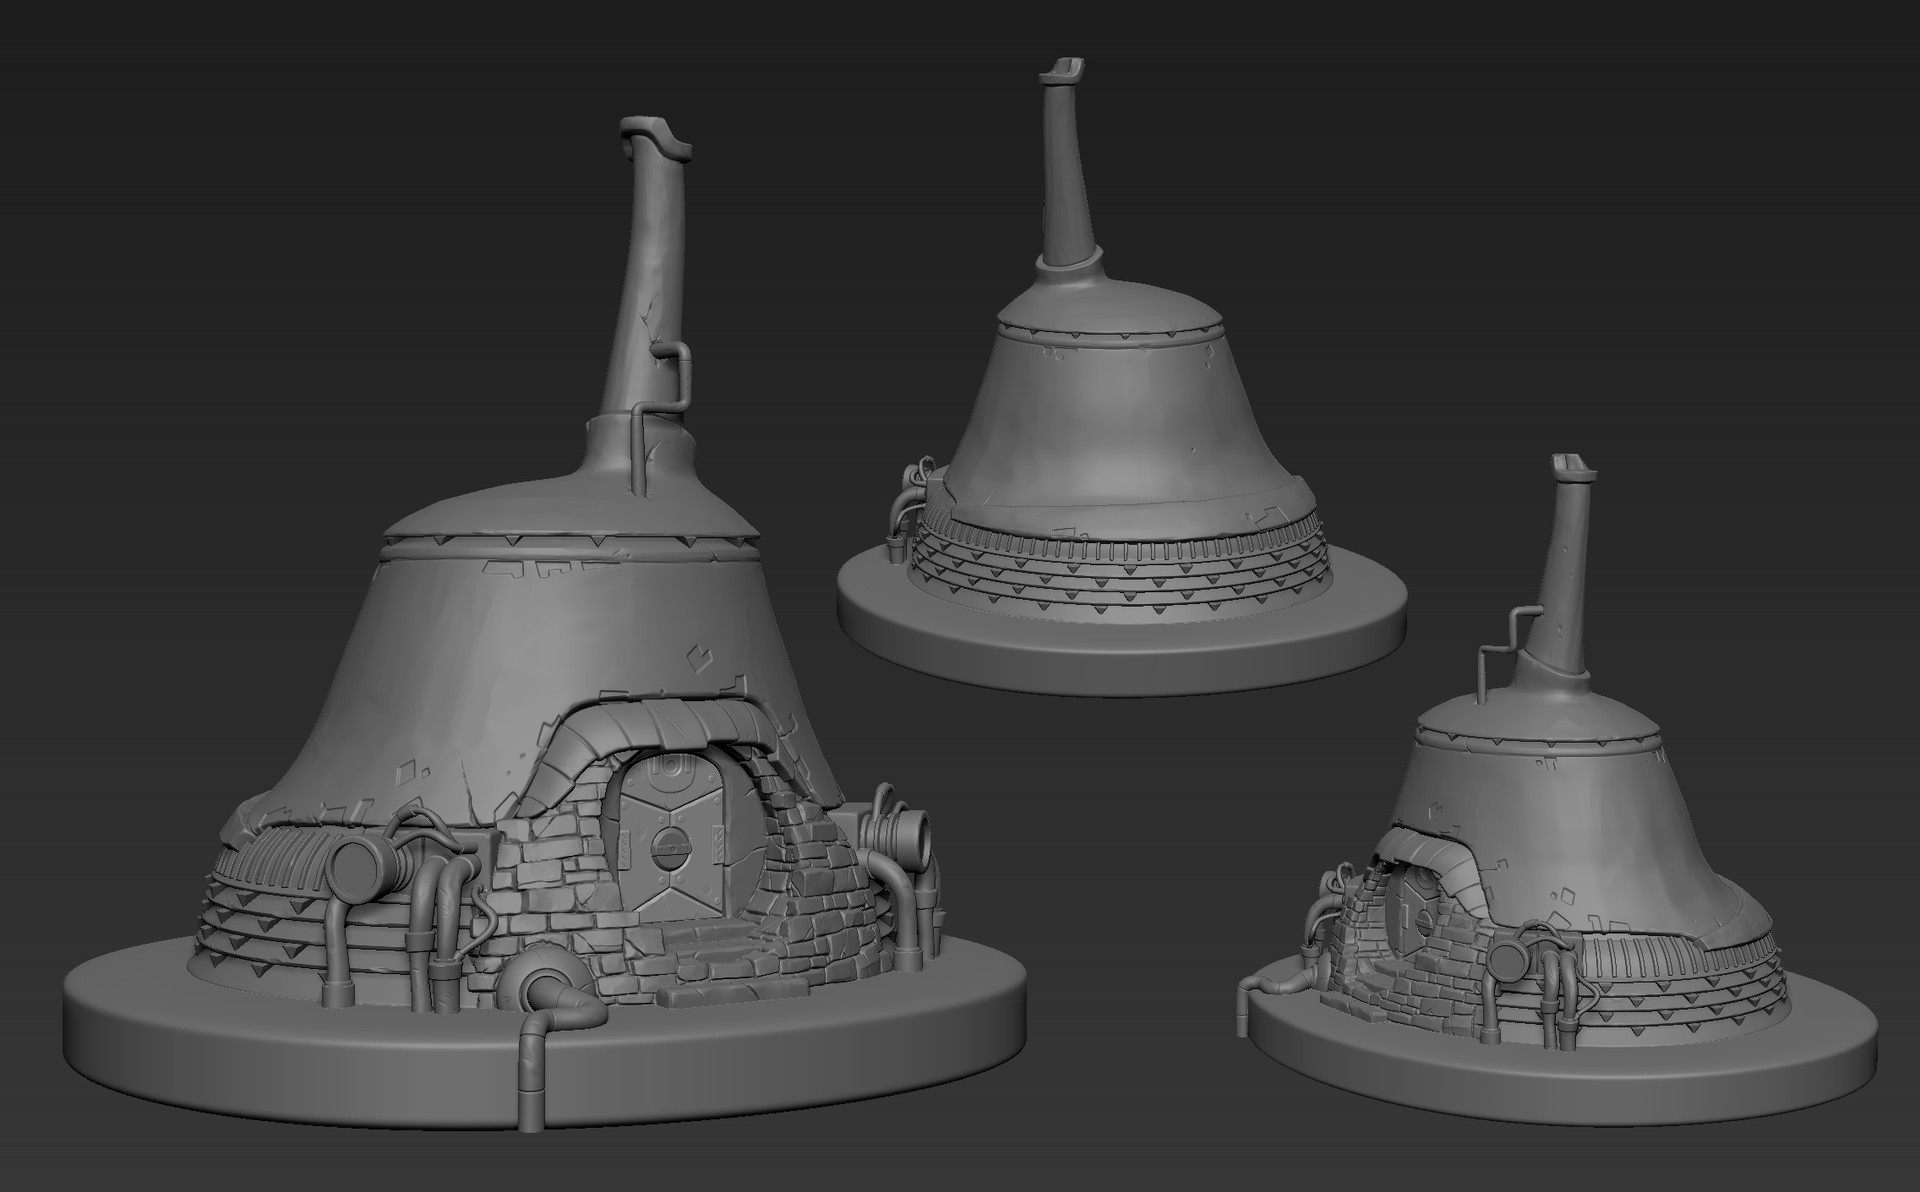 Robert fink motiga hut sculpt